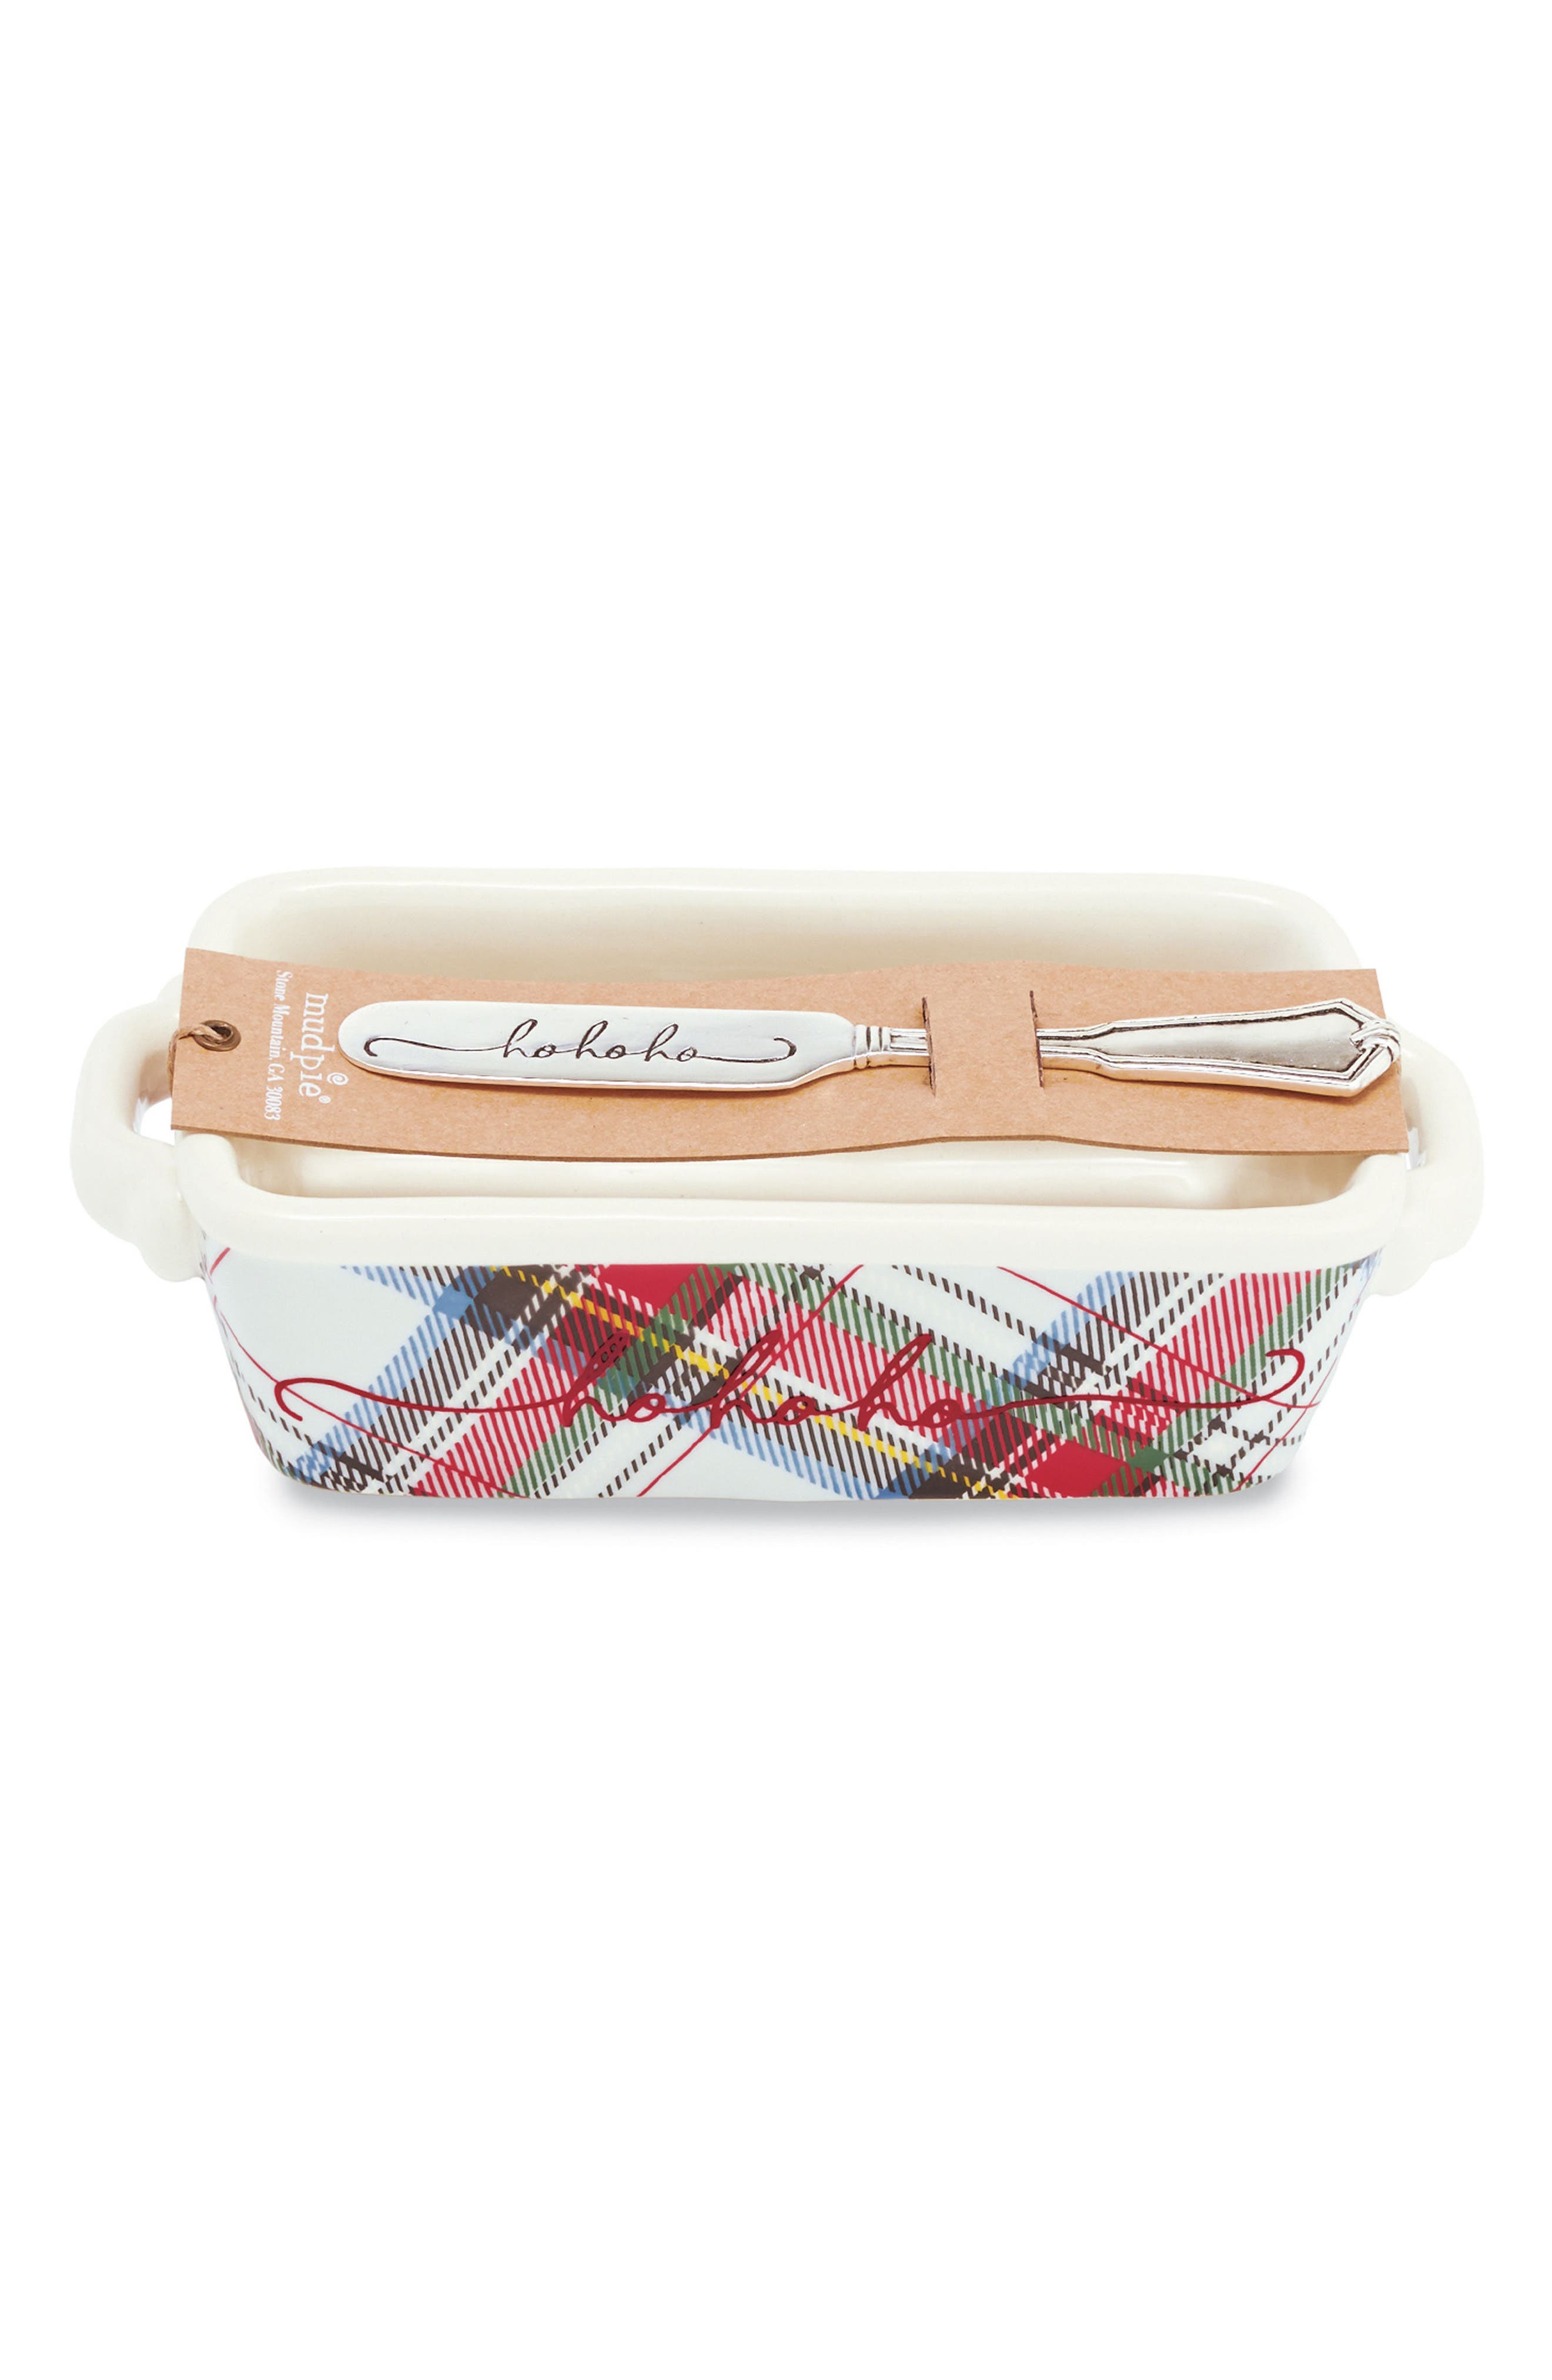 Mud Pie Ho Ho Ho Tartan Stoneware Mini Loaf Pan & Spreader